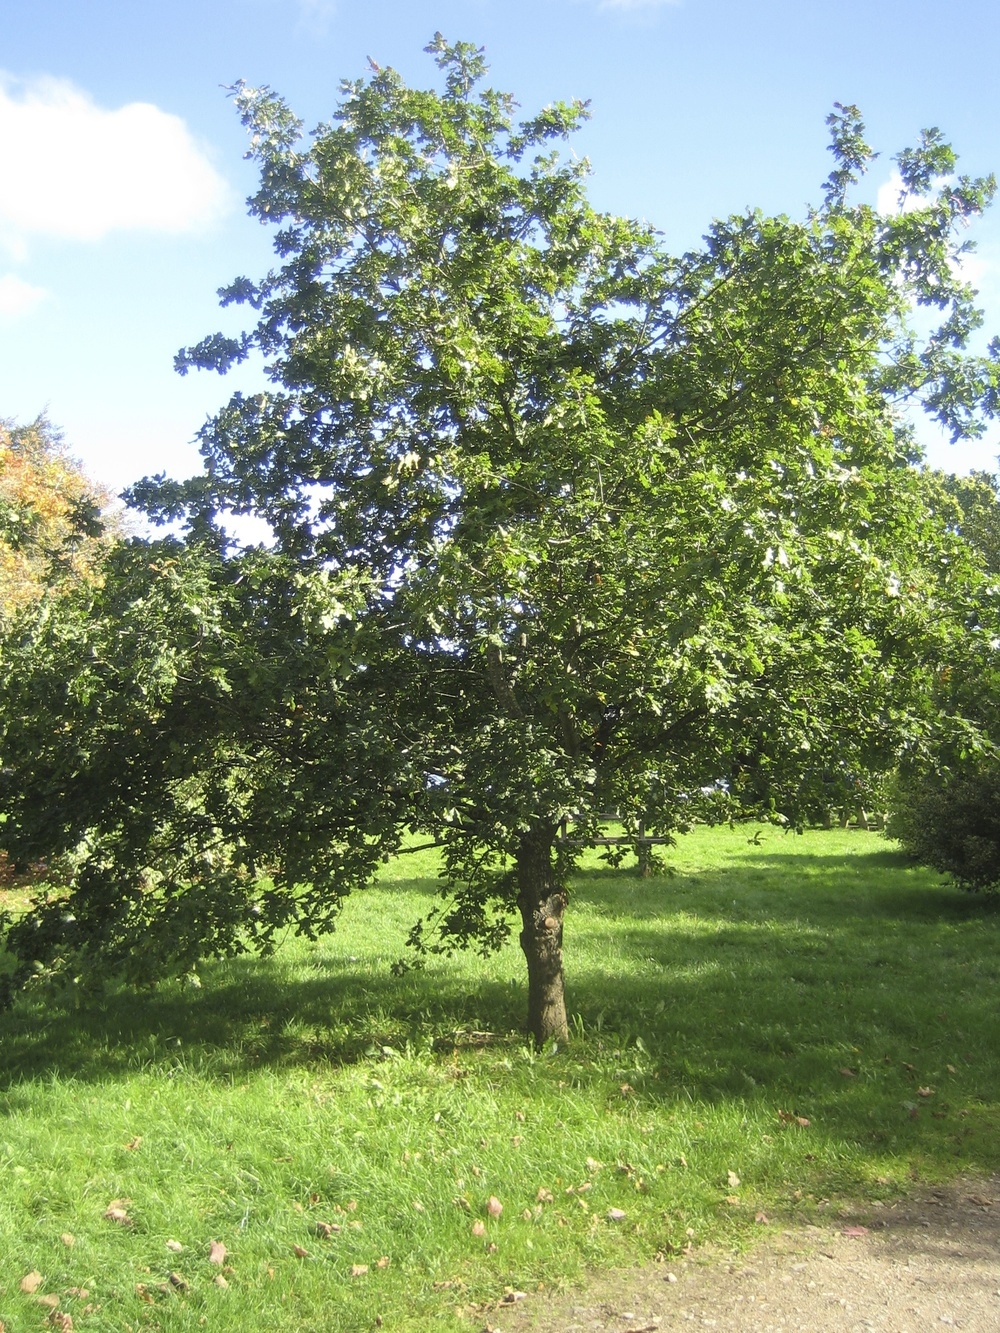 English oak in the summertime